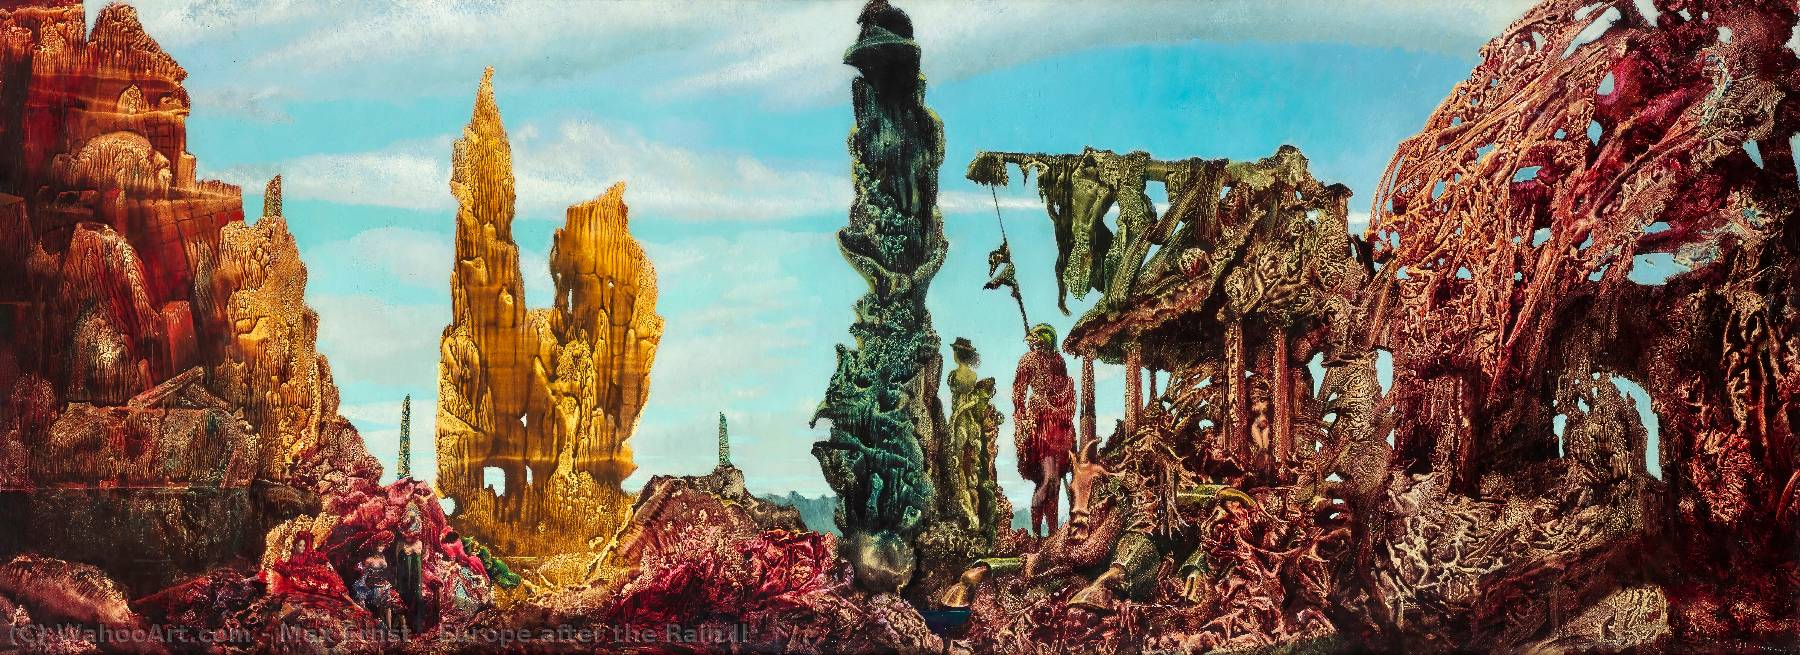 http://fr.wahooart.com/Art.nsf/O/8XYK6C/$File/Max-Ernst-Europe-after-the-Rain-II.JPG